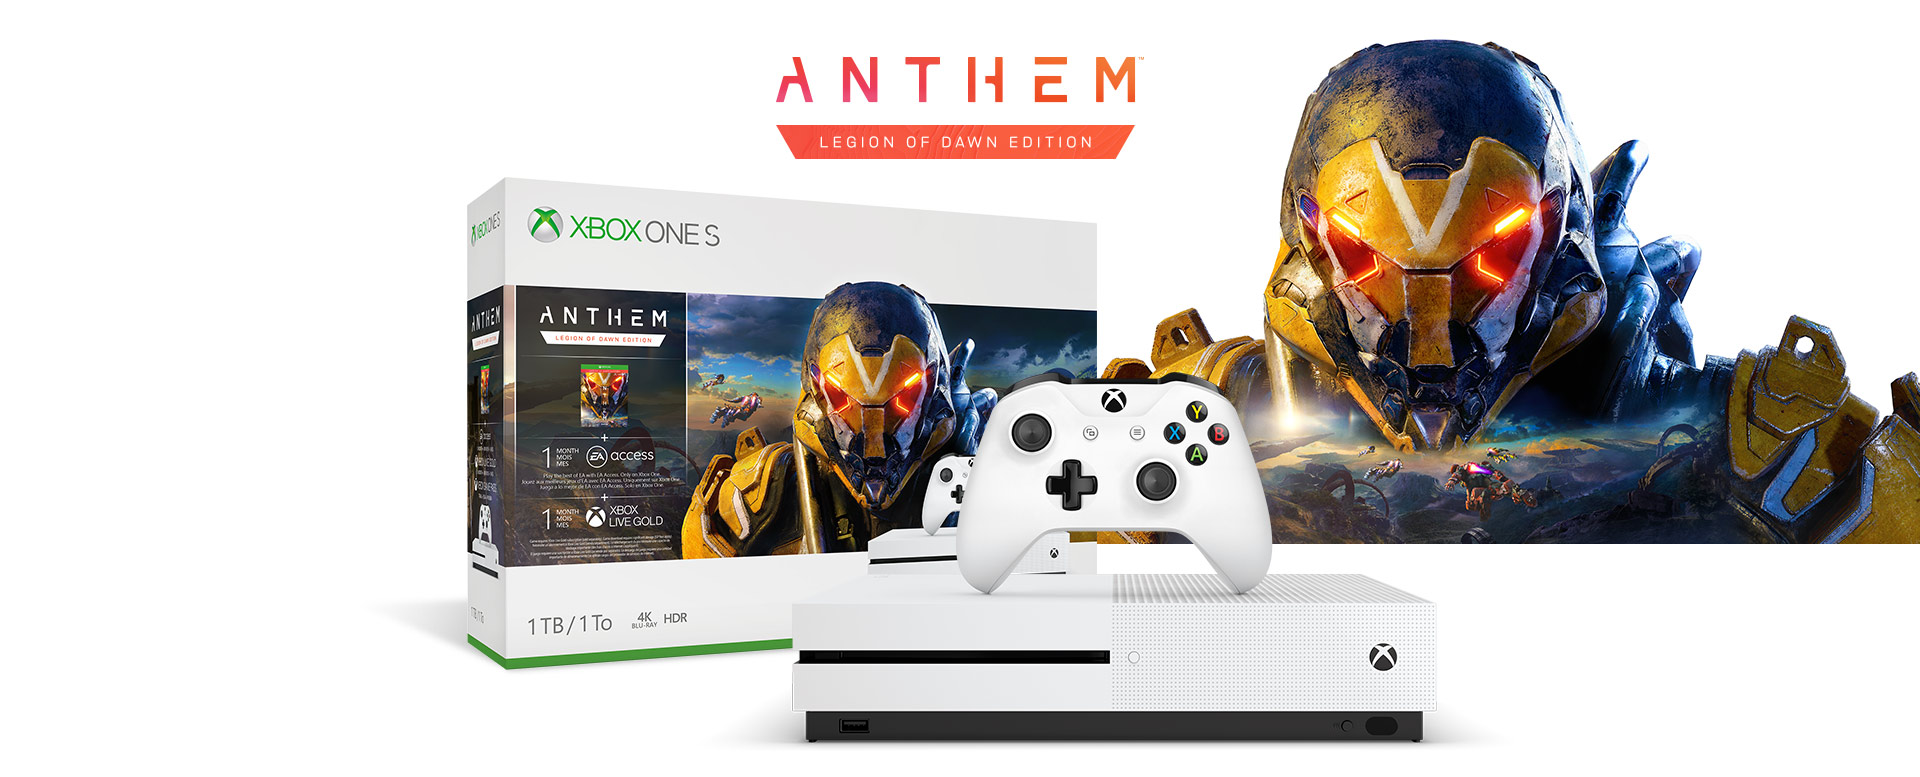 Anthem Legion of Dawn Edition, consola Xbox One S con caja del pack de hardware y arte del juego Anthem